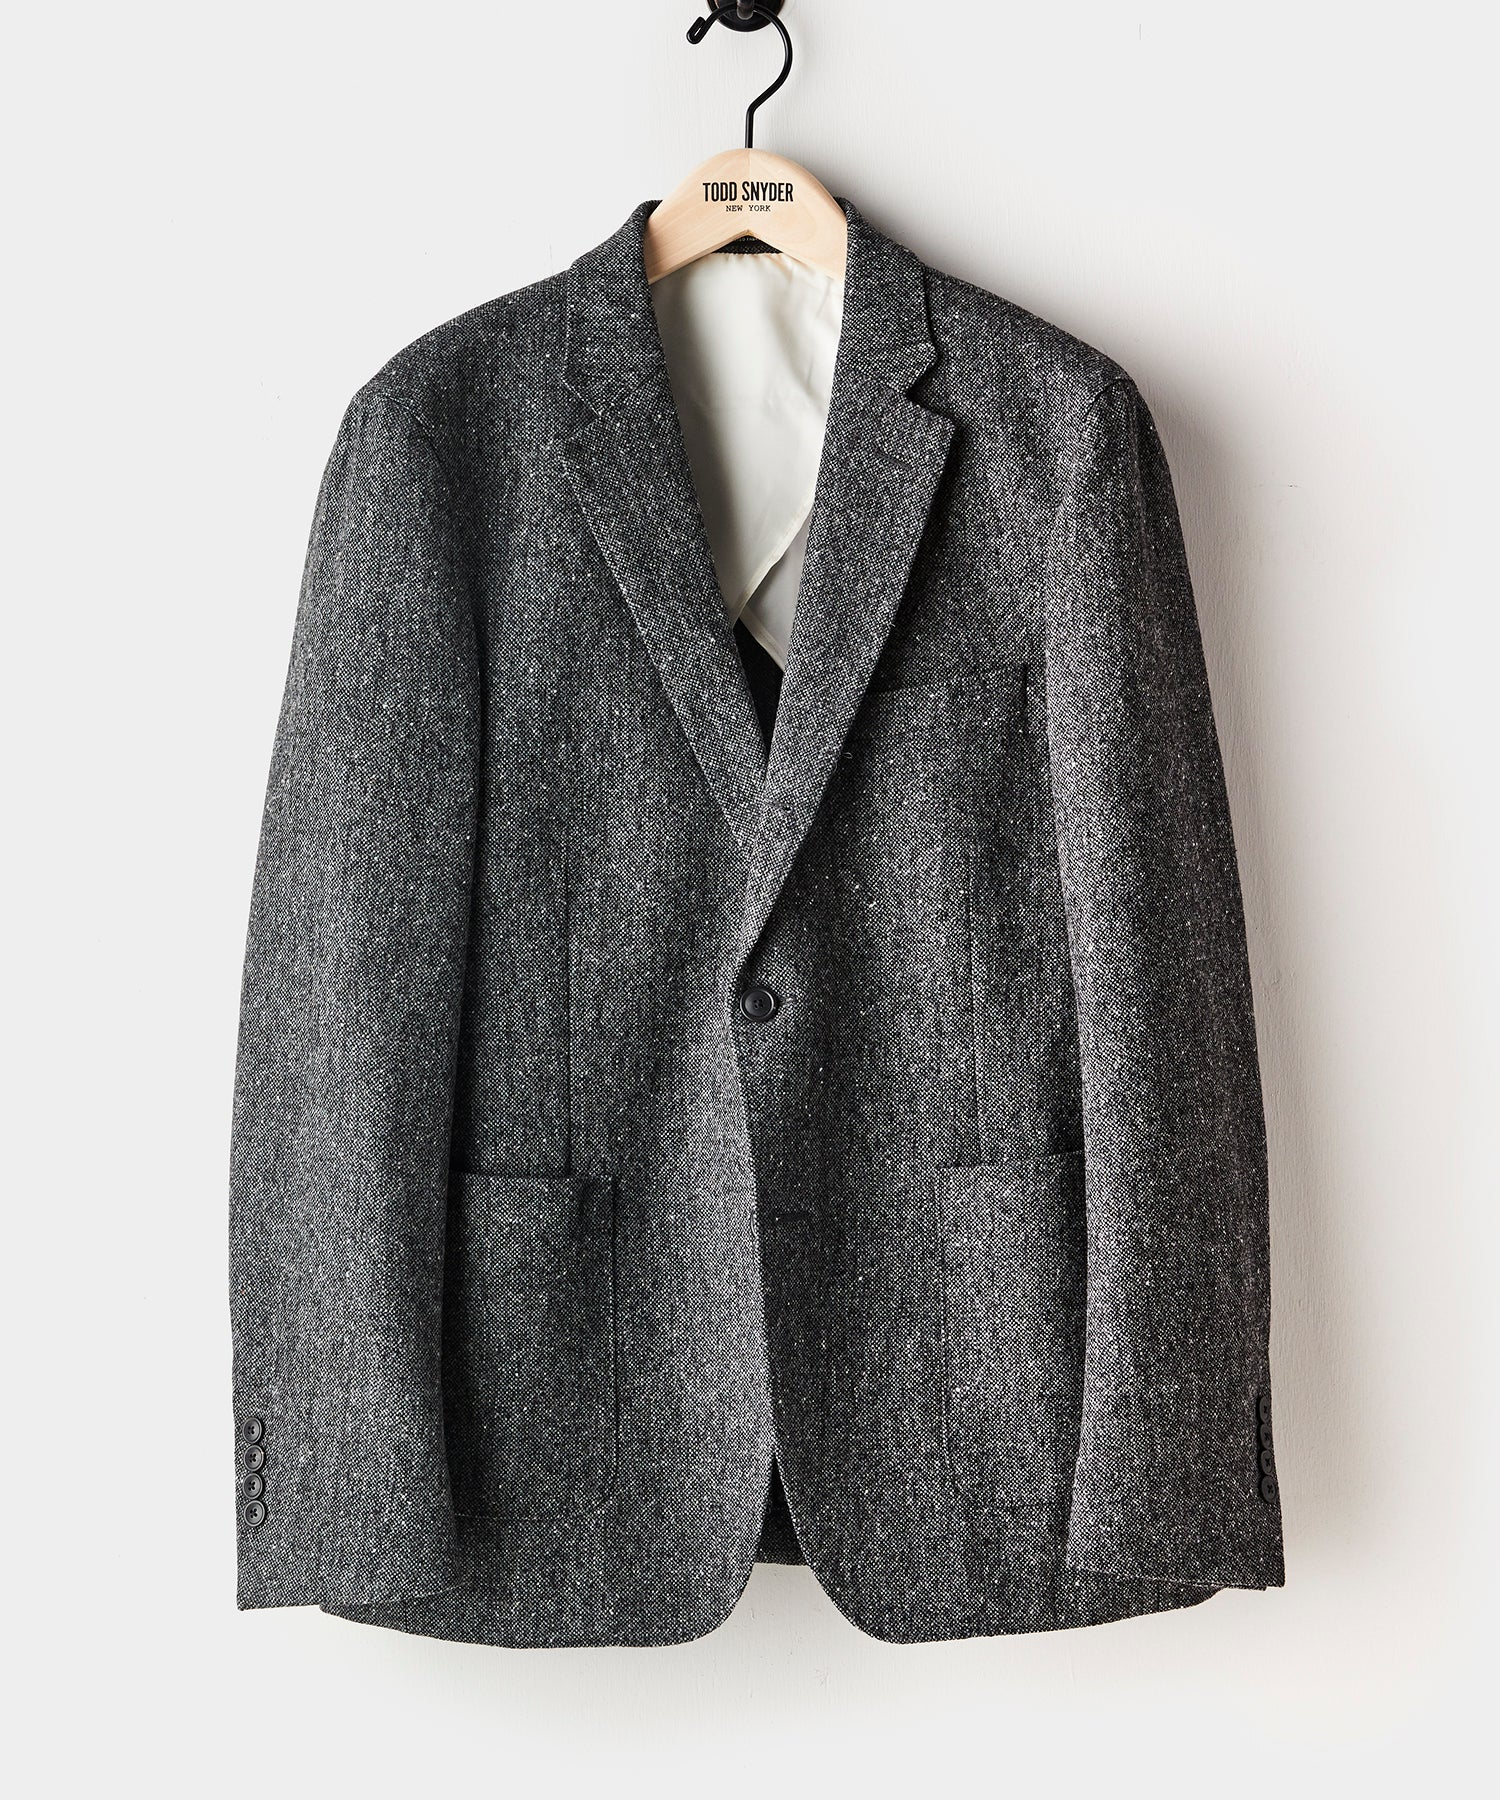 Donegal Wool Madison Suit Jacket in Charcoal